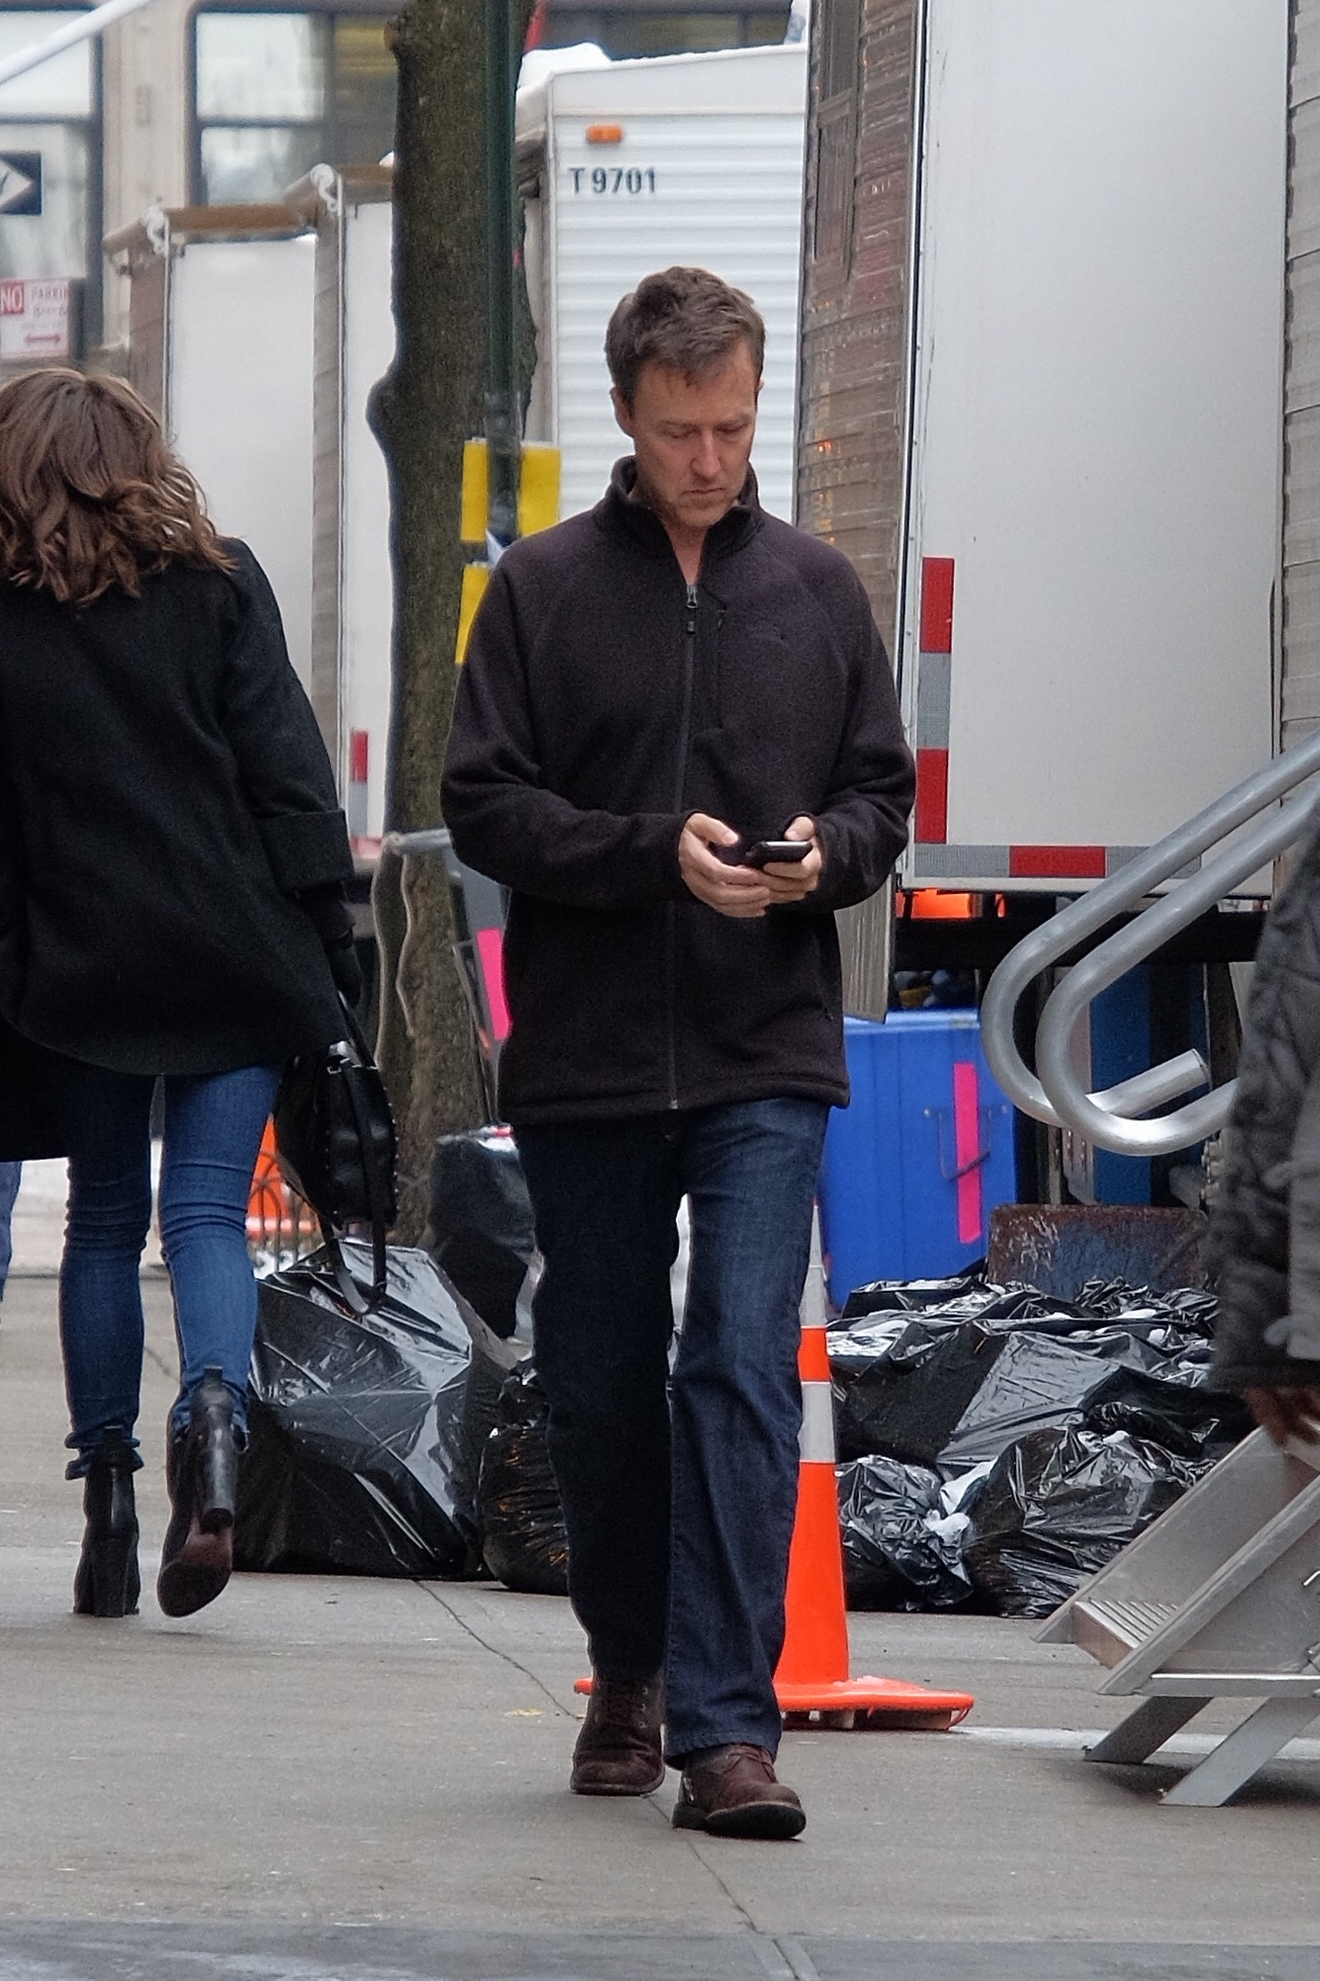 Stars on the set of 'Collateral Beauty,' filming in Manhattan  Featuring: Edward Norton Where: Manhattan, New York, United States When: 04 Mar 2016 Credit: TNYF/WENN.com